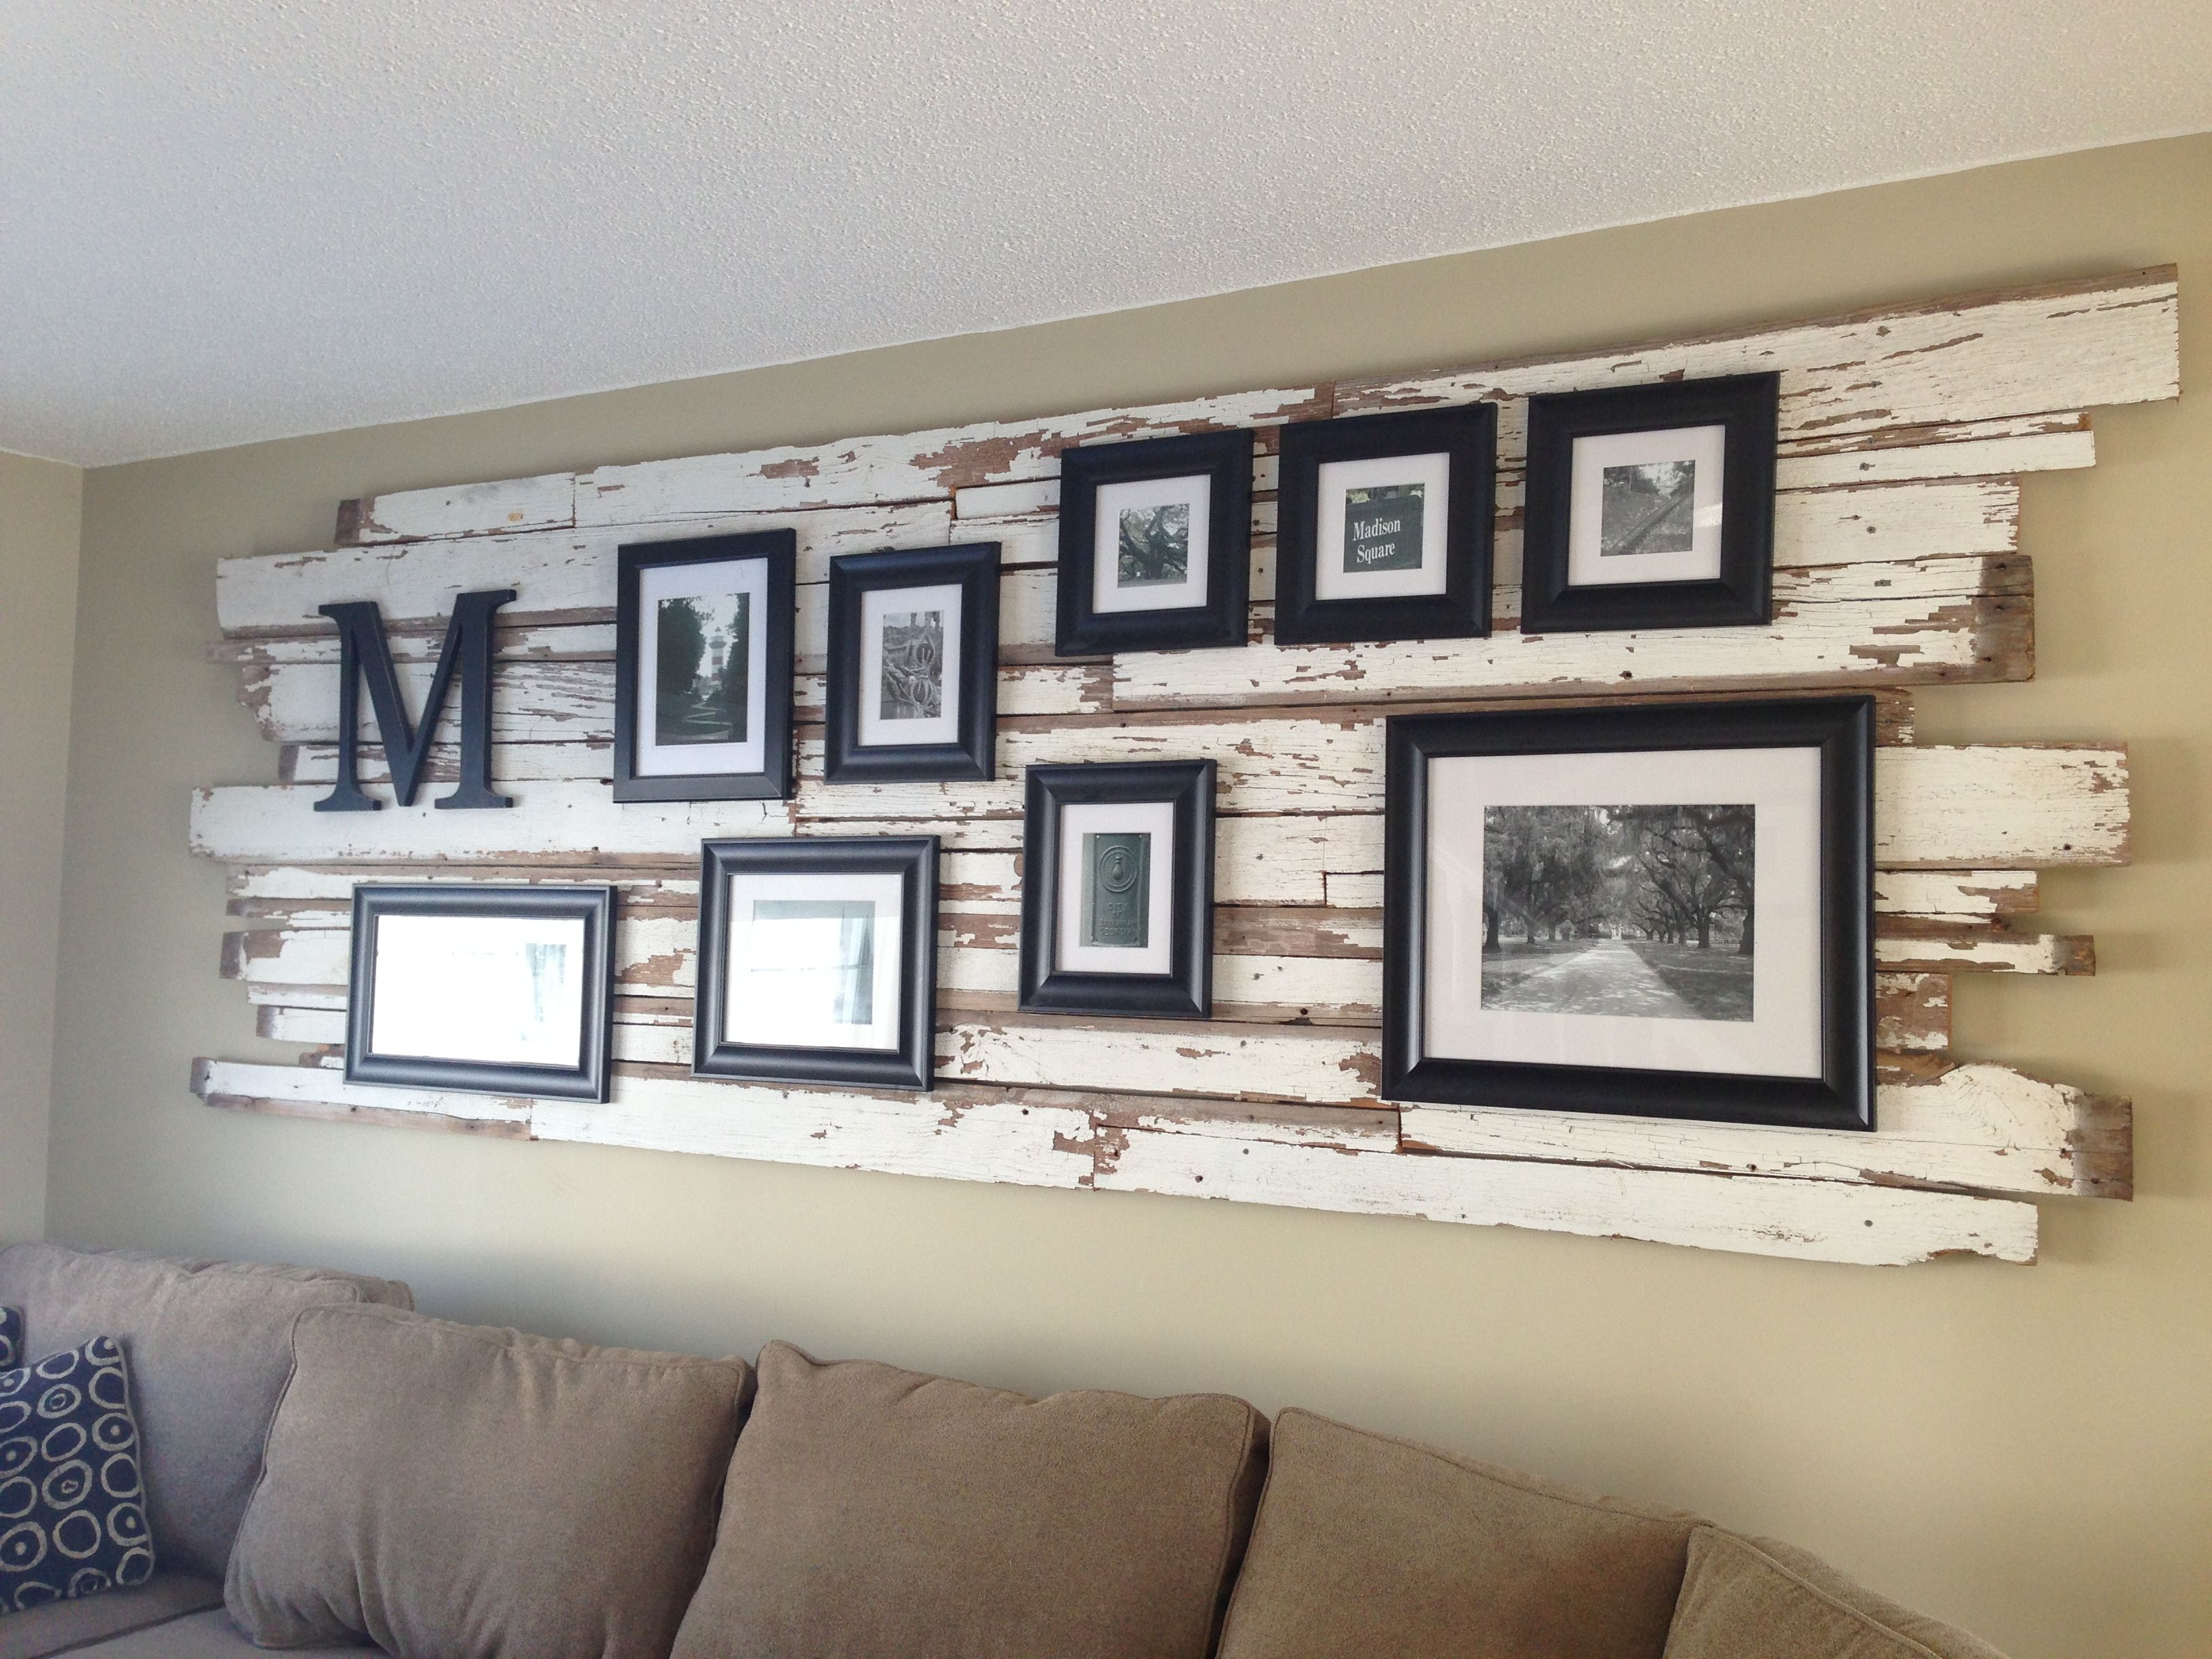 Pin By Jill Madison On Home Sweet Home Room Wall Decor Rustic Wall Decor Home Decor